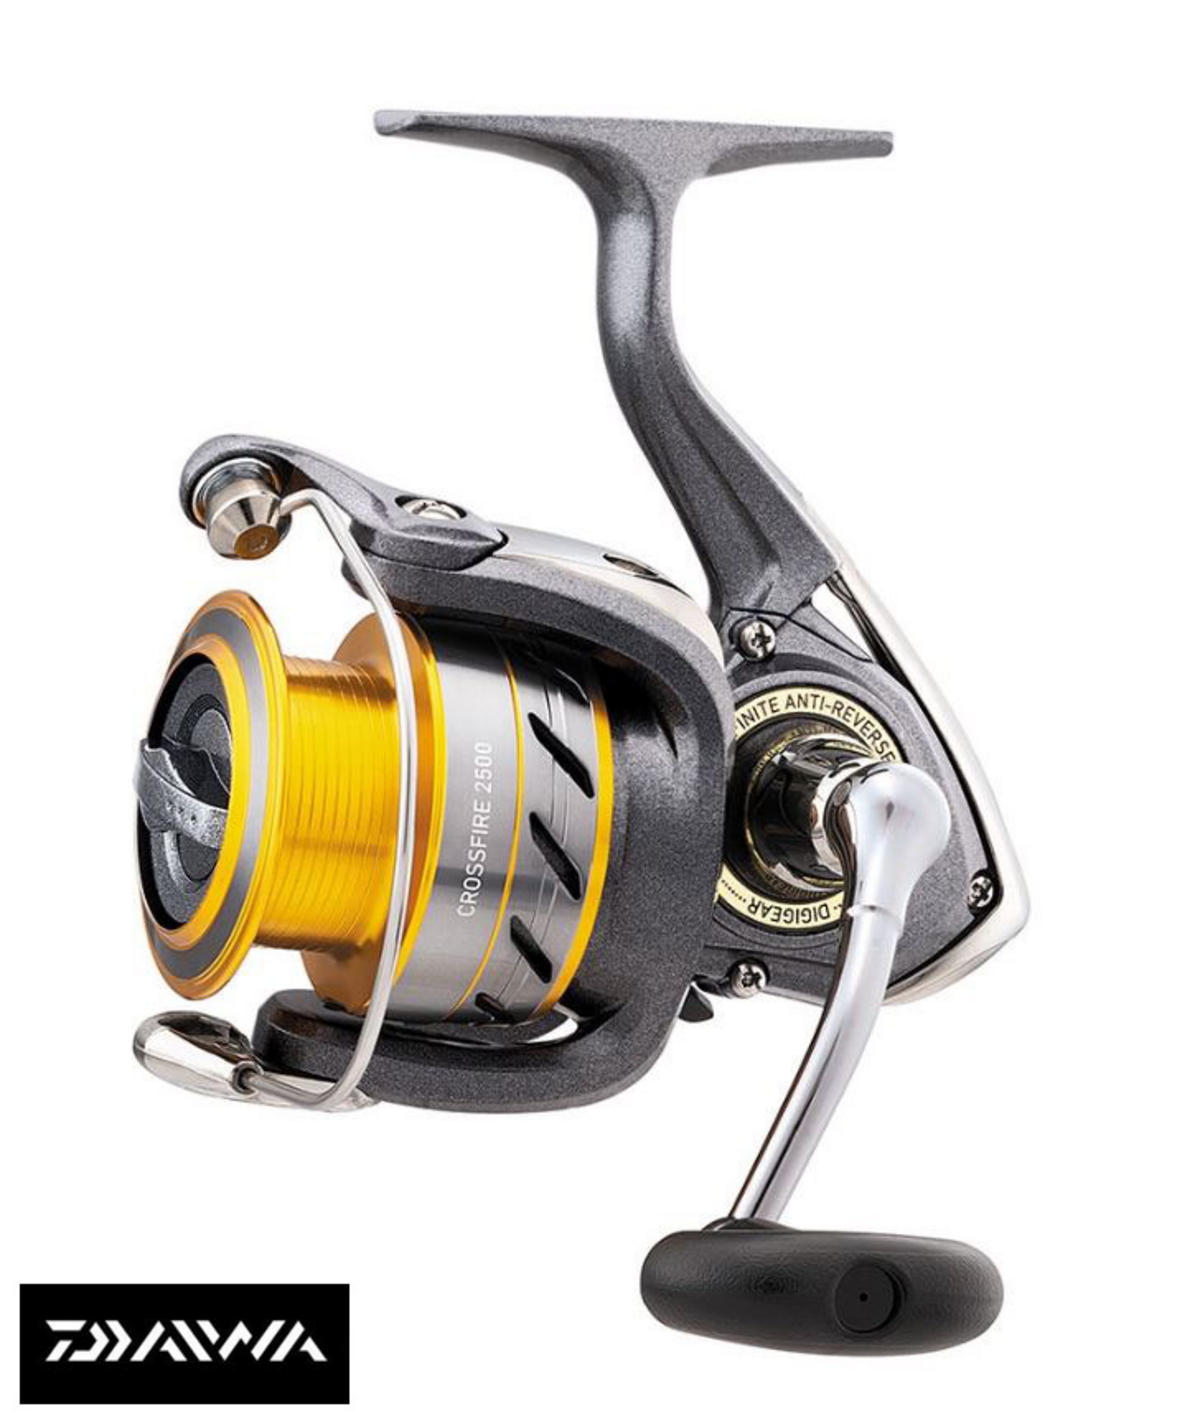 New Daiwa Crossfire Spinning Fishing Reel - All Models 2000 - 5000